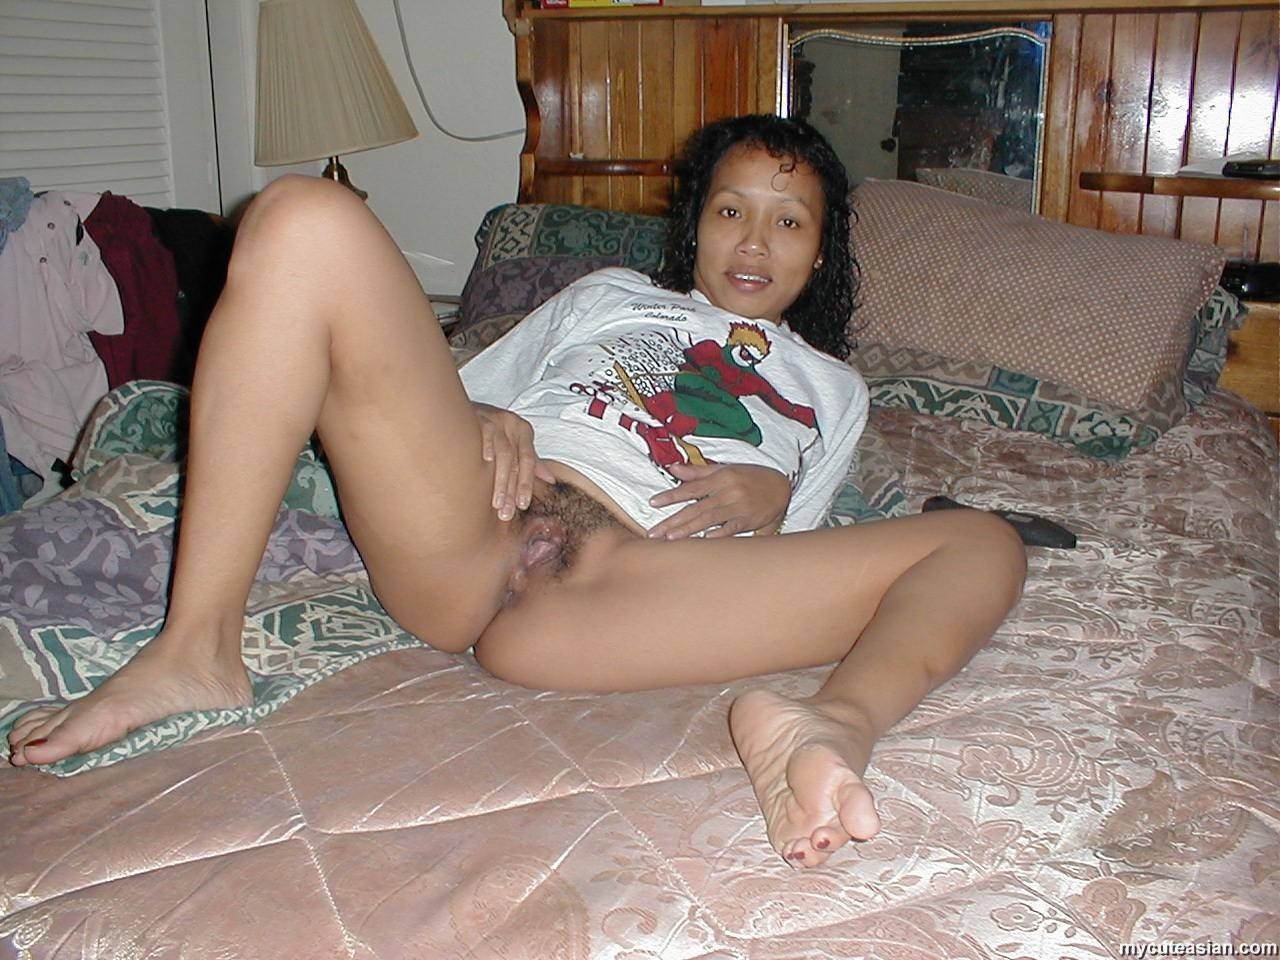 Latina milf pussy and ass